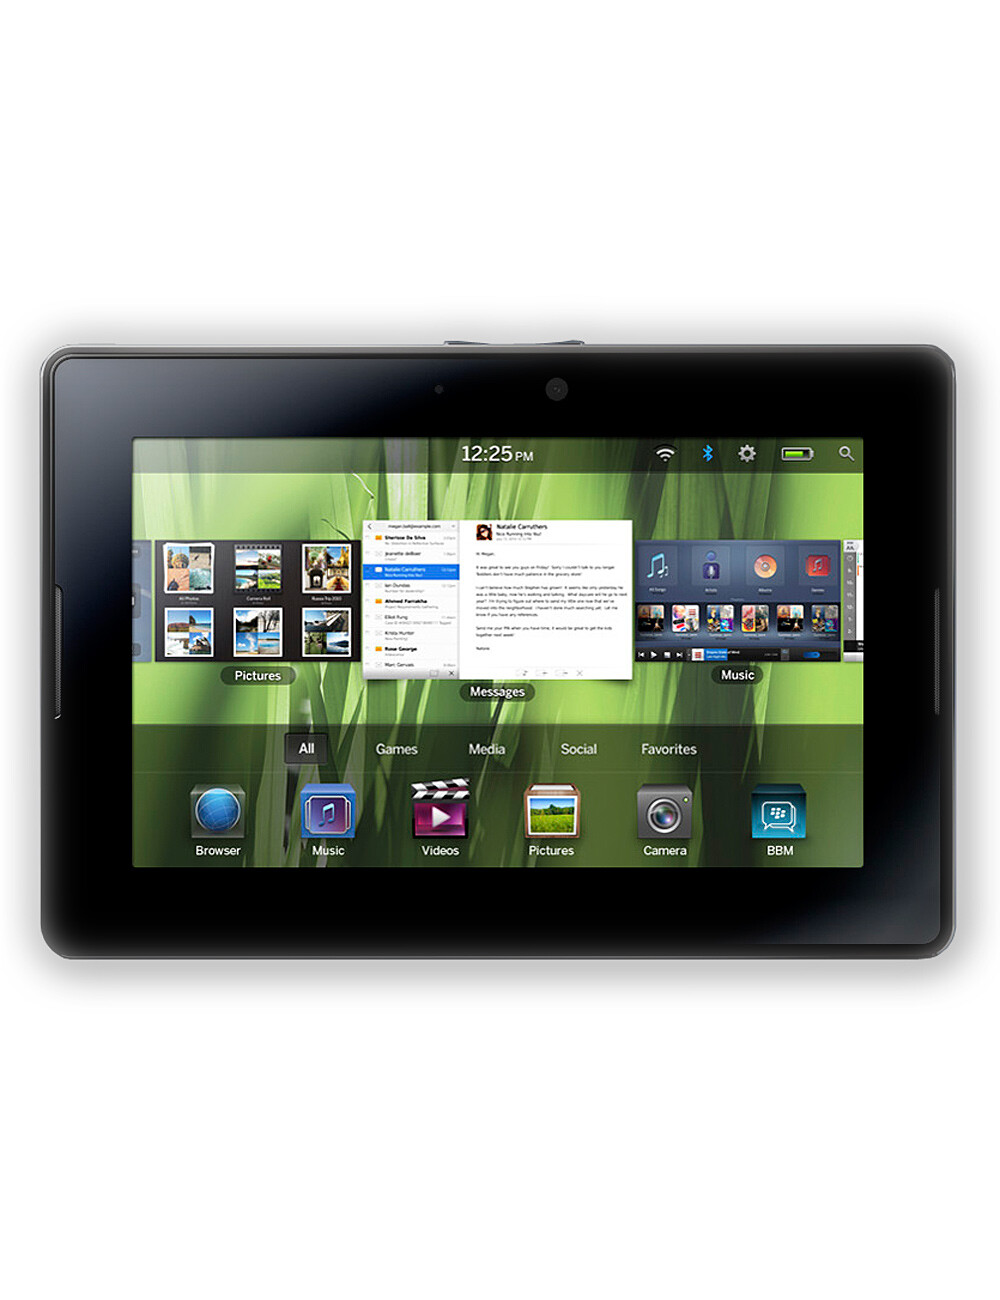 blackberry playbook user manual pdf